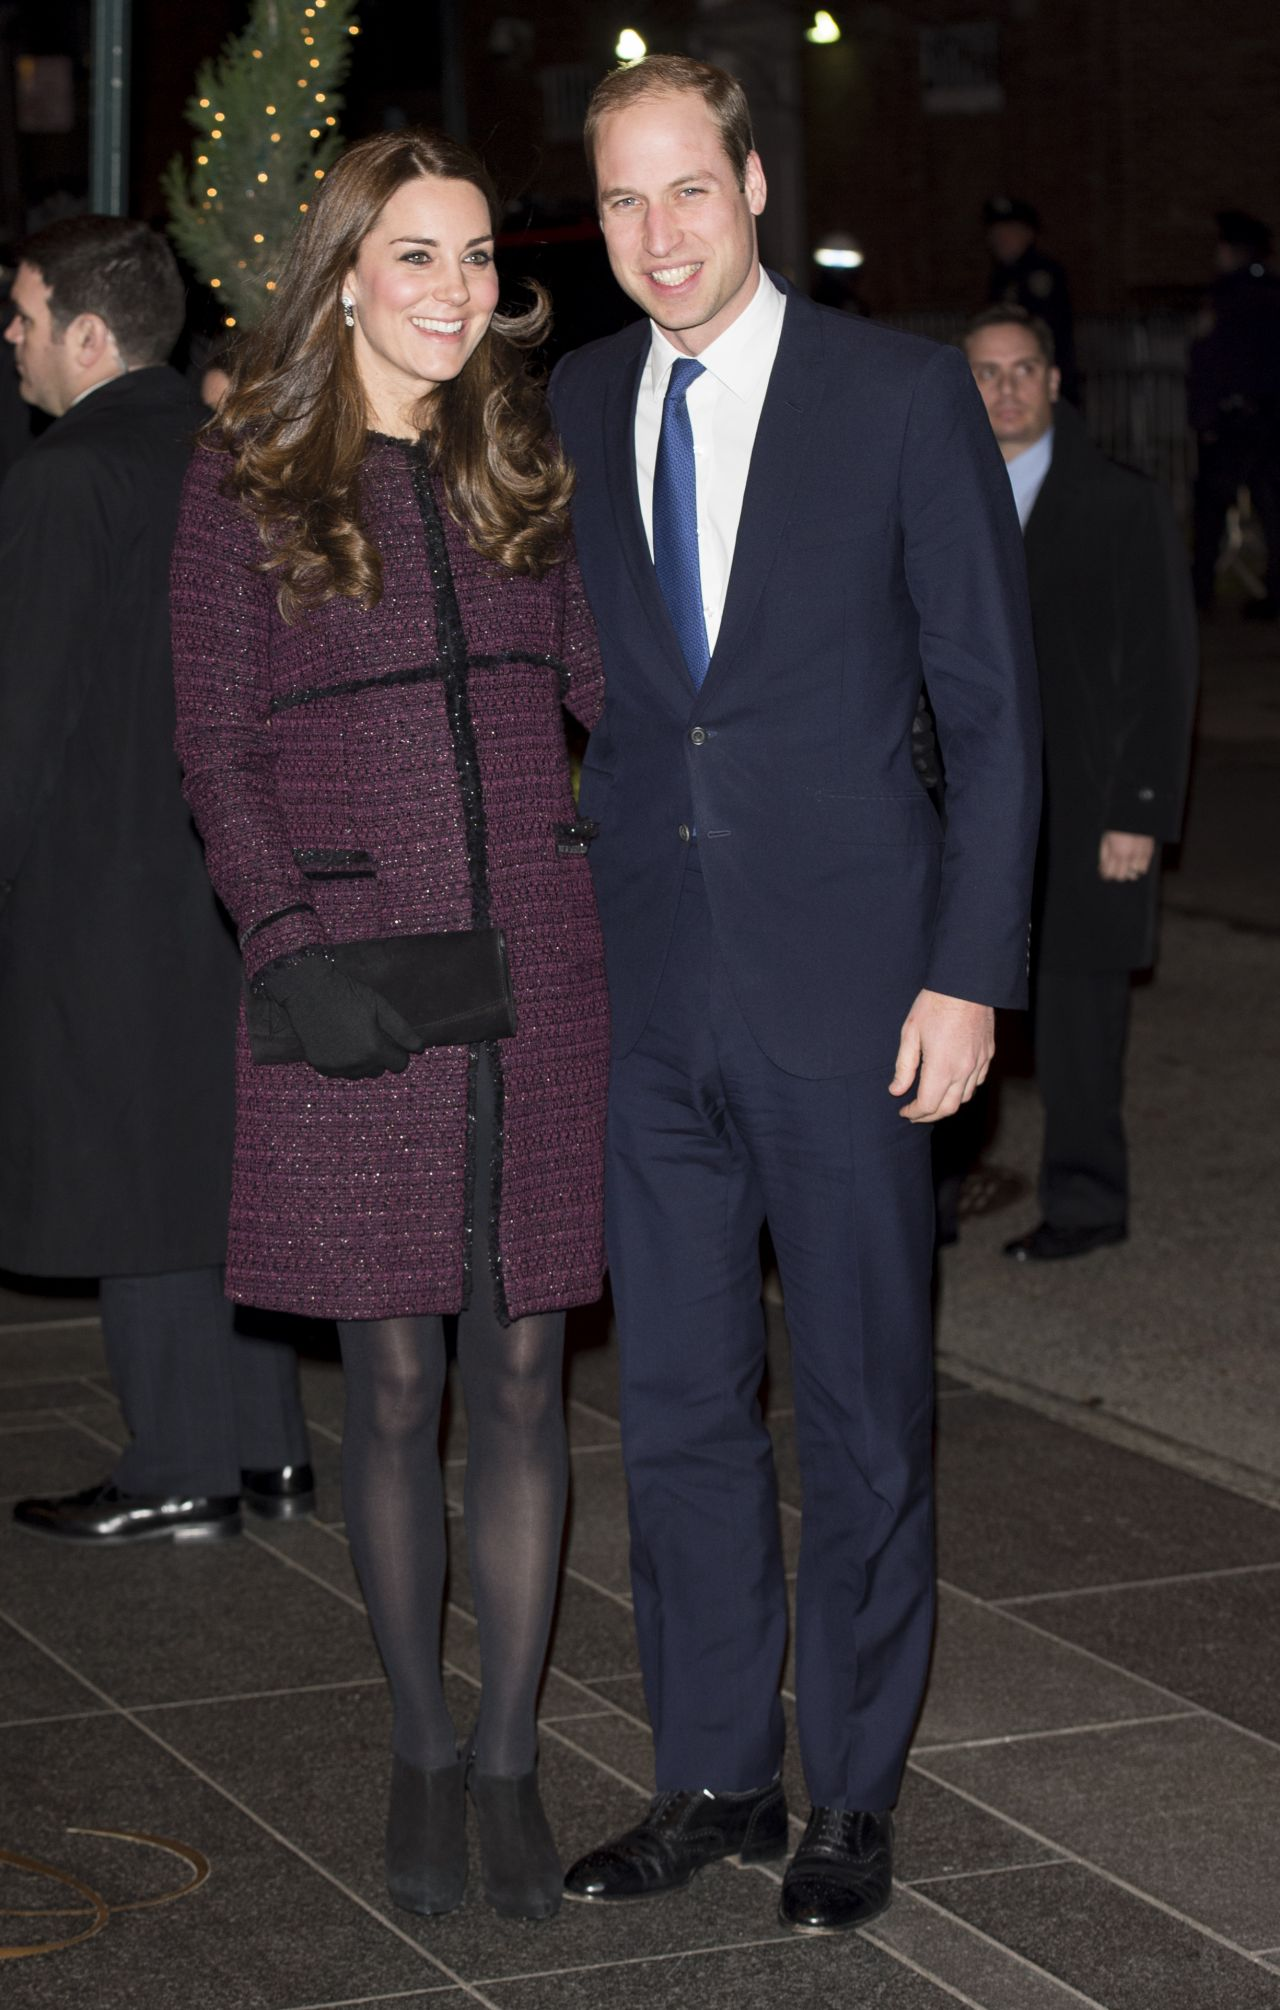 Kate Middleton (Duchess of Cambridge) and Prince William at The Carlyle Hotel in New York City – December 2014